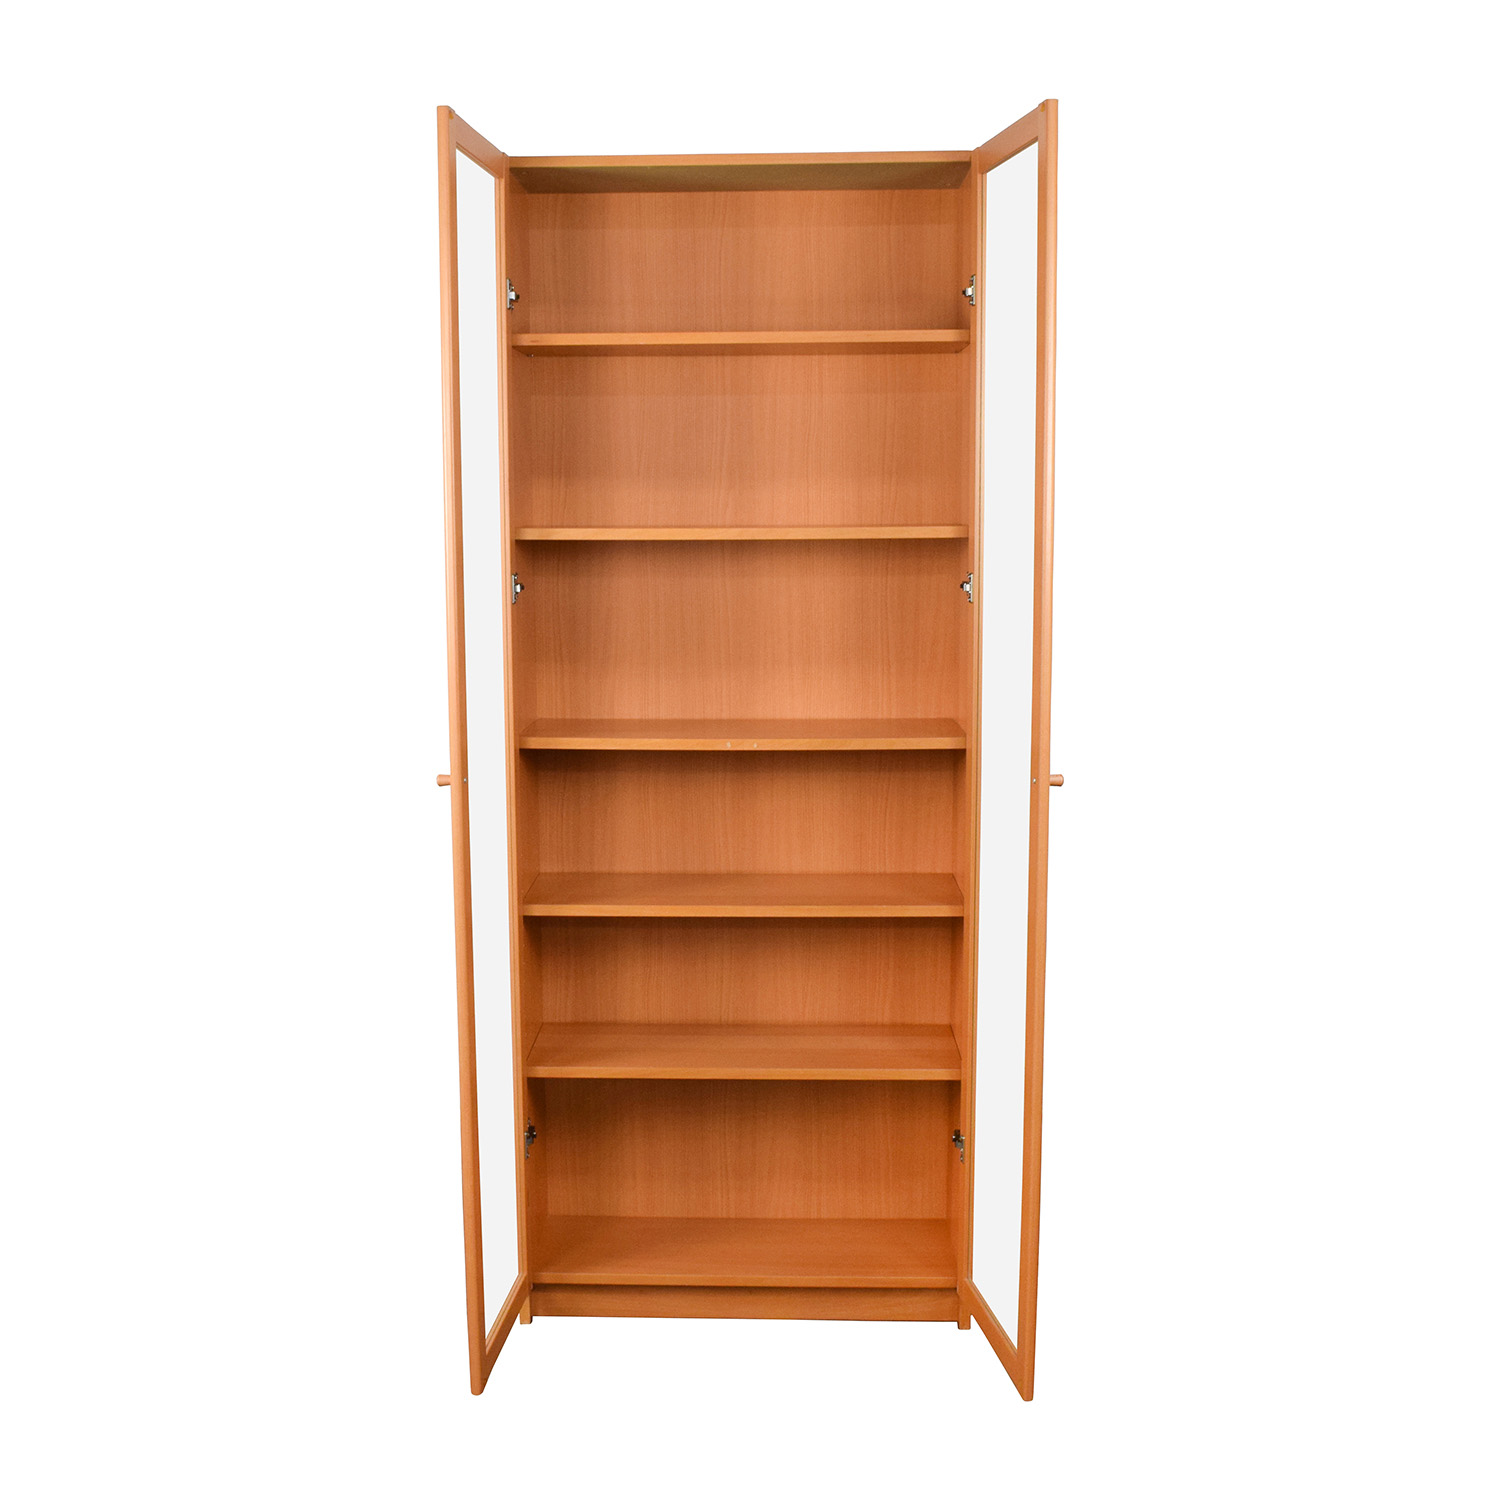 IKEA IKEA Glass Shelving Unit on sale